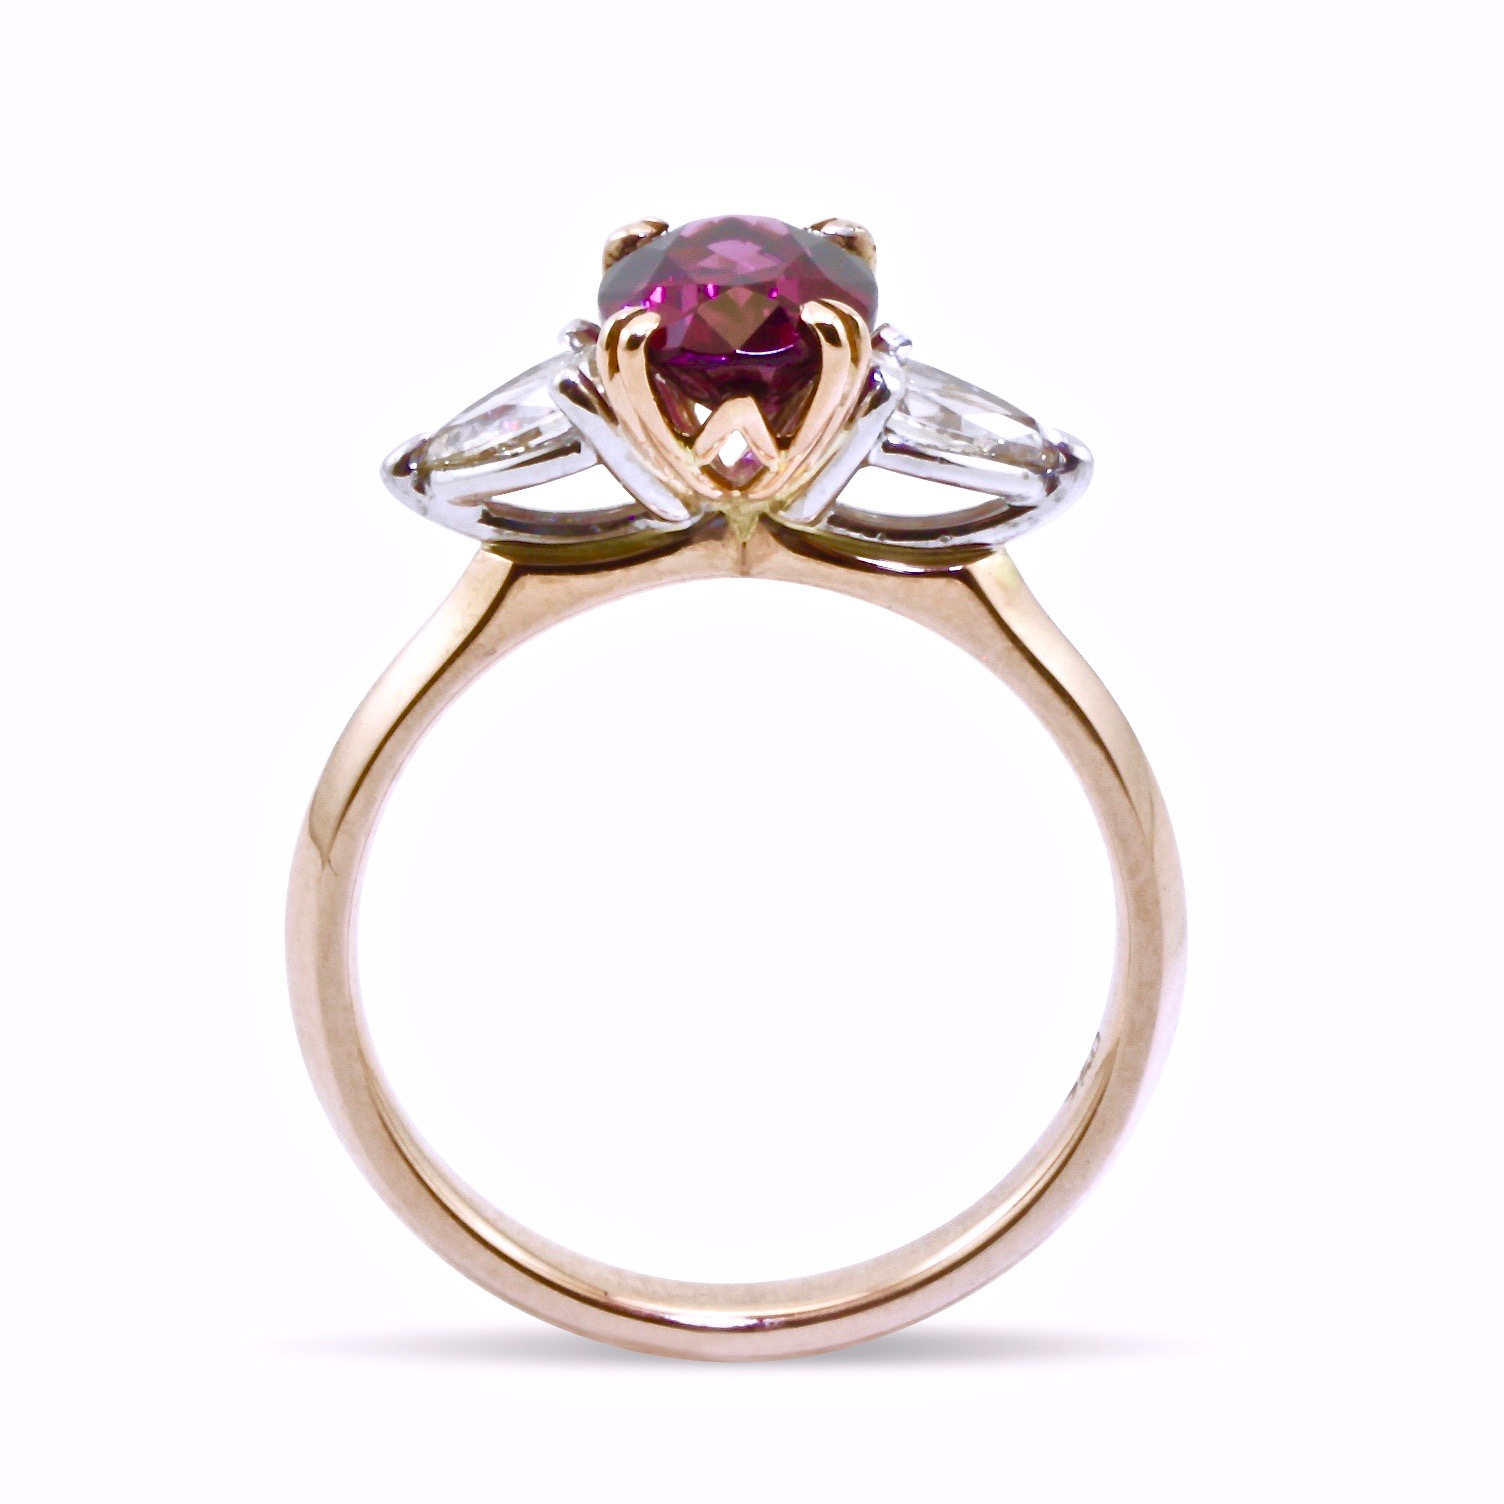 Garnet and diamond anniversary ring in rose and white gold